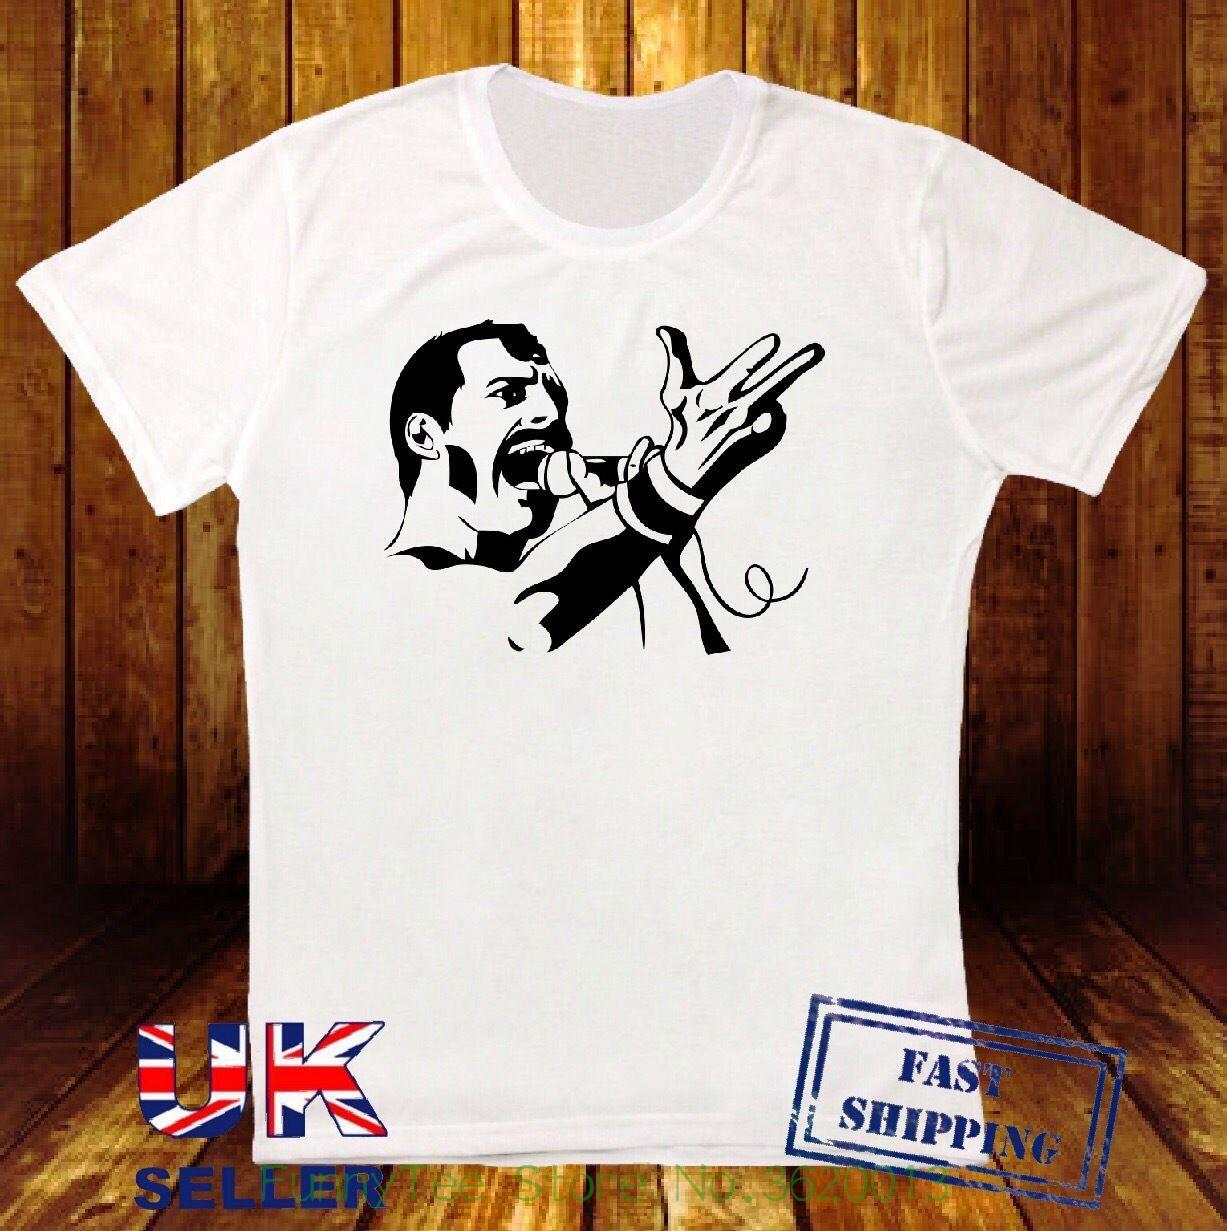 24ab1b5e0836 Freddy Mercury Queen Singing Rock Star British Illustration White T Shirt  573 T Shirt S Tees Shirts From Funnyteestore